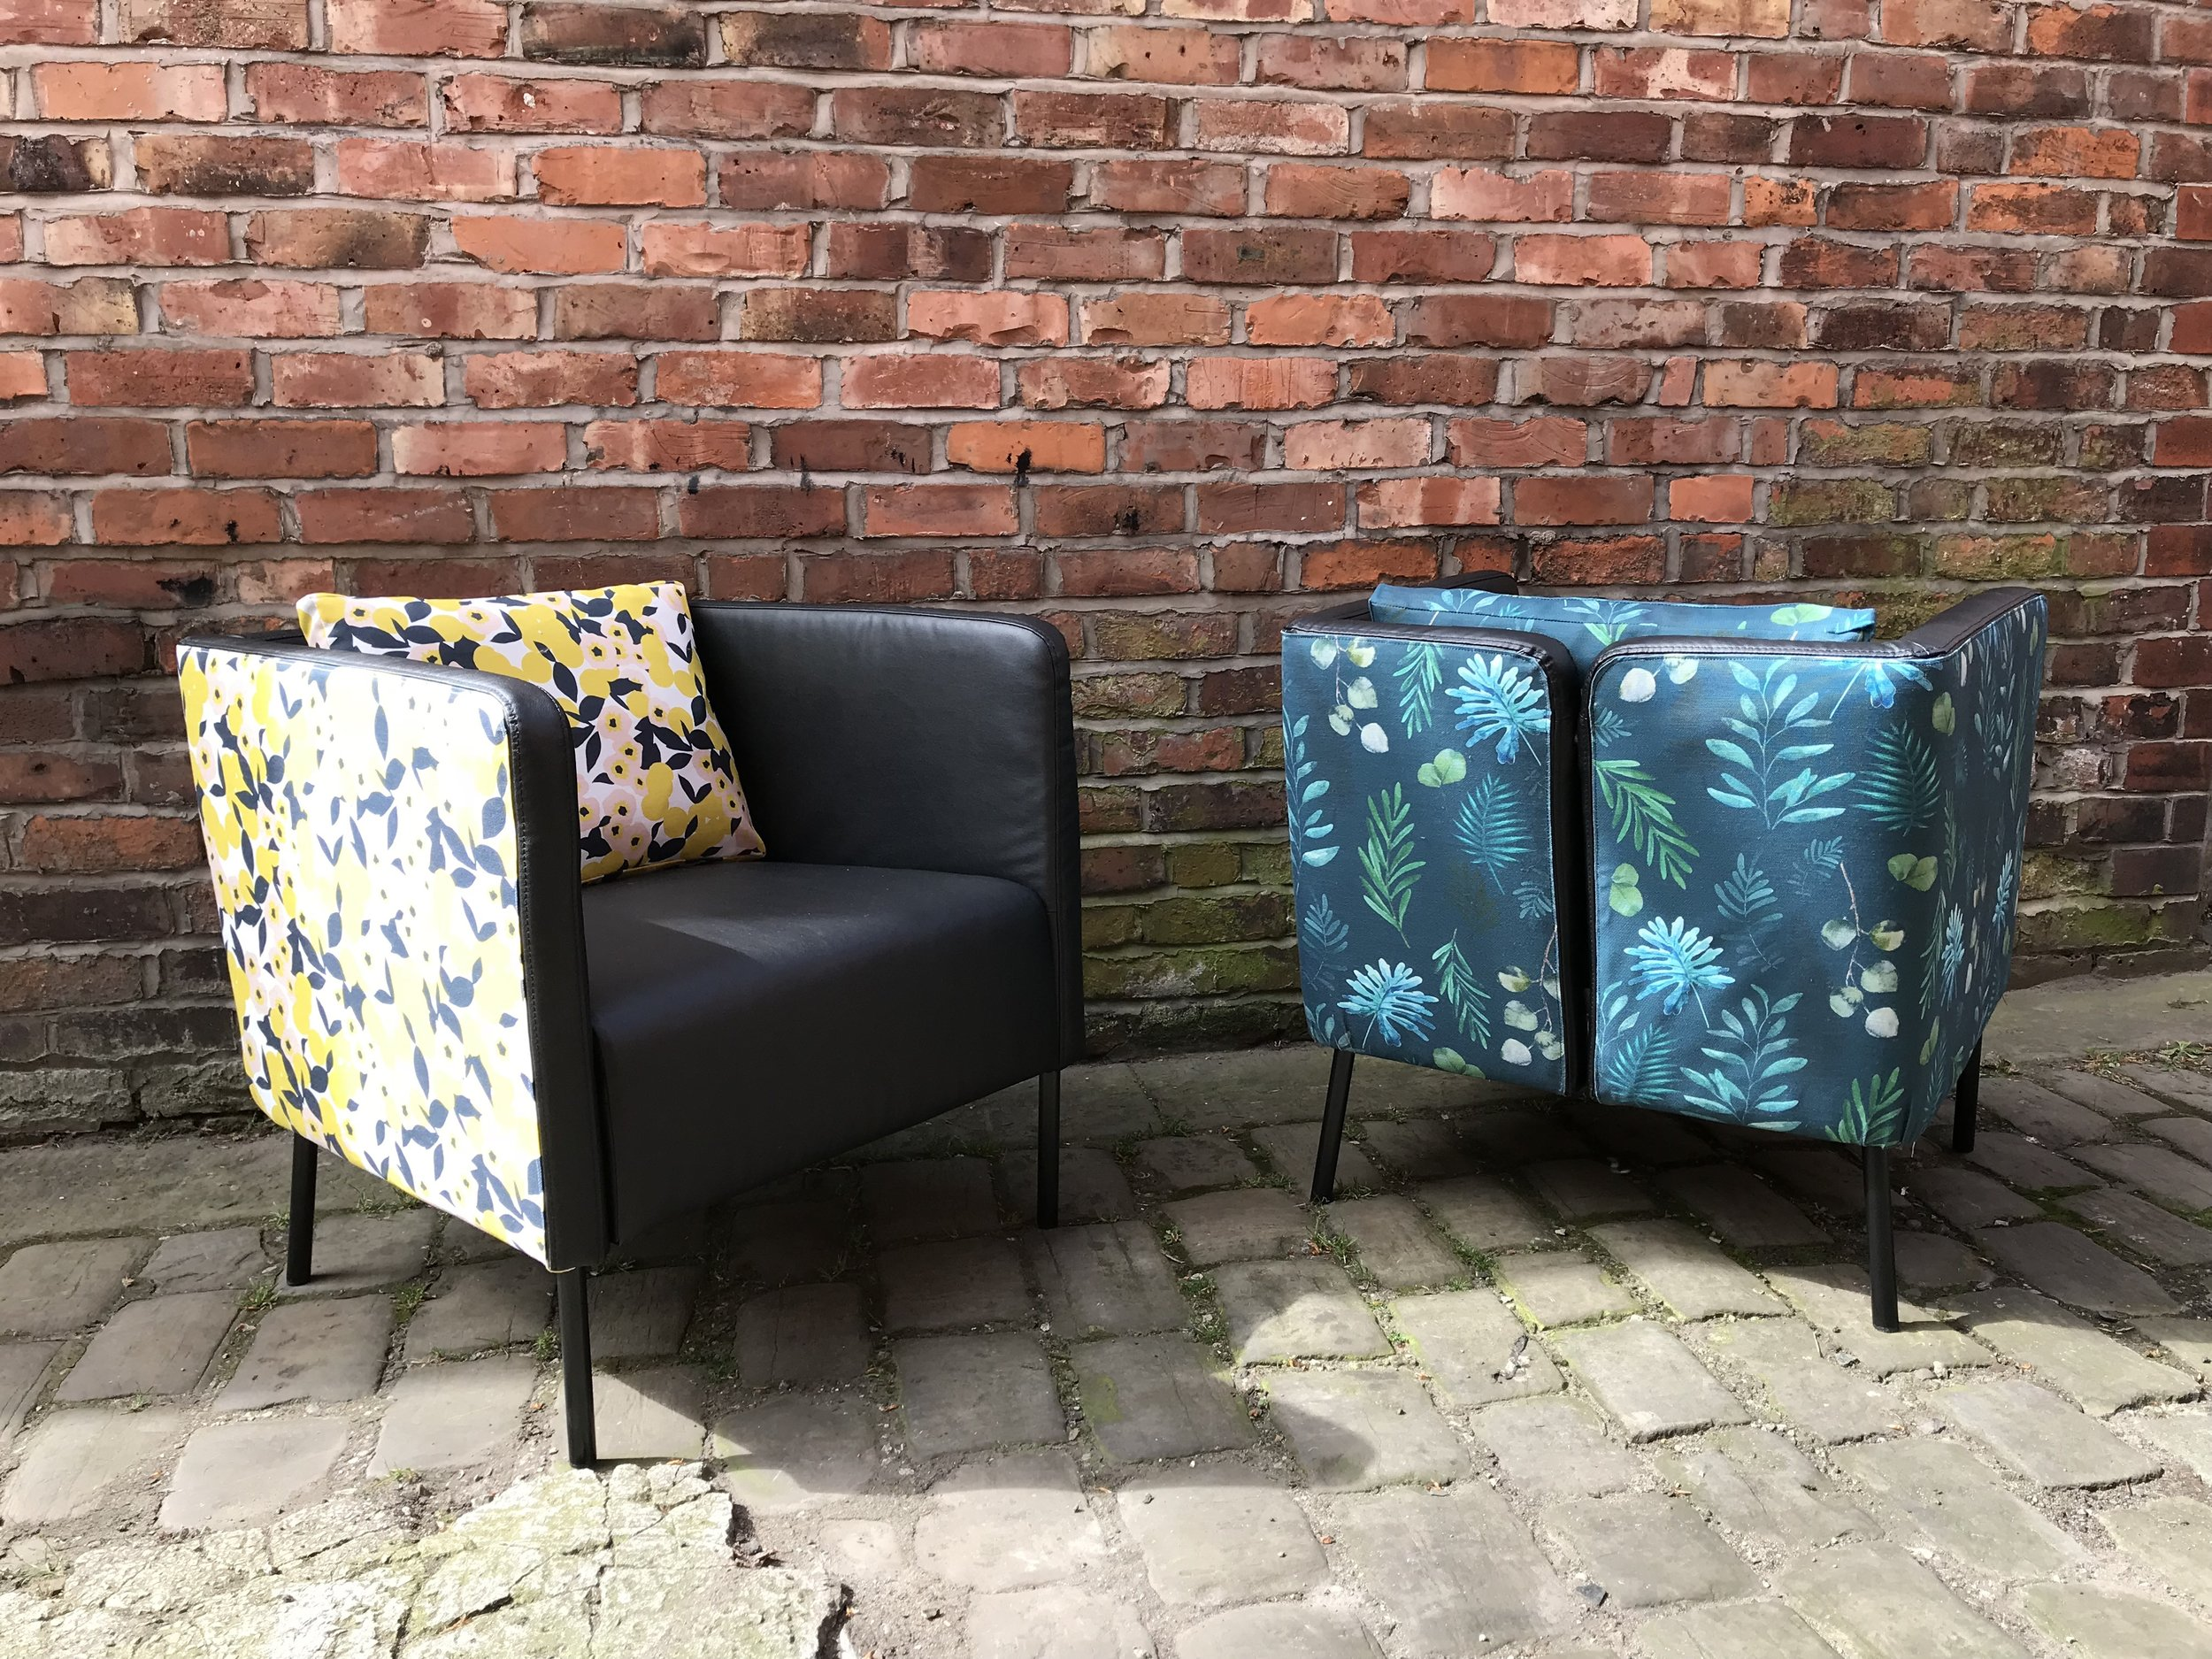 FESPA international - We re-worked these Ikea chairs for the trade fair in Berlin 2018